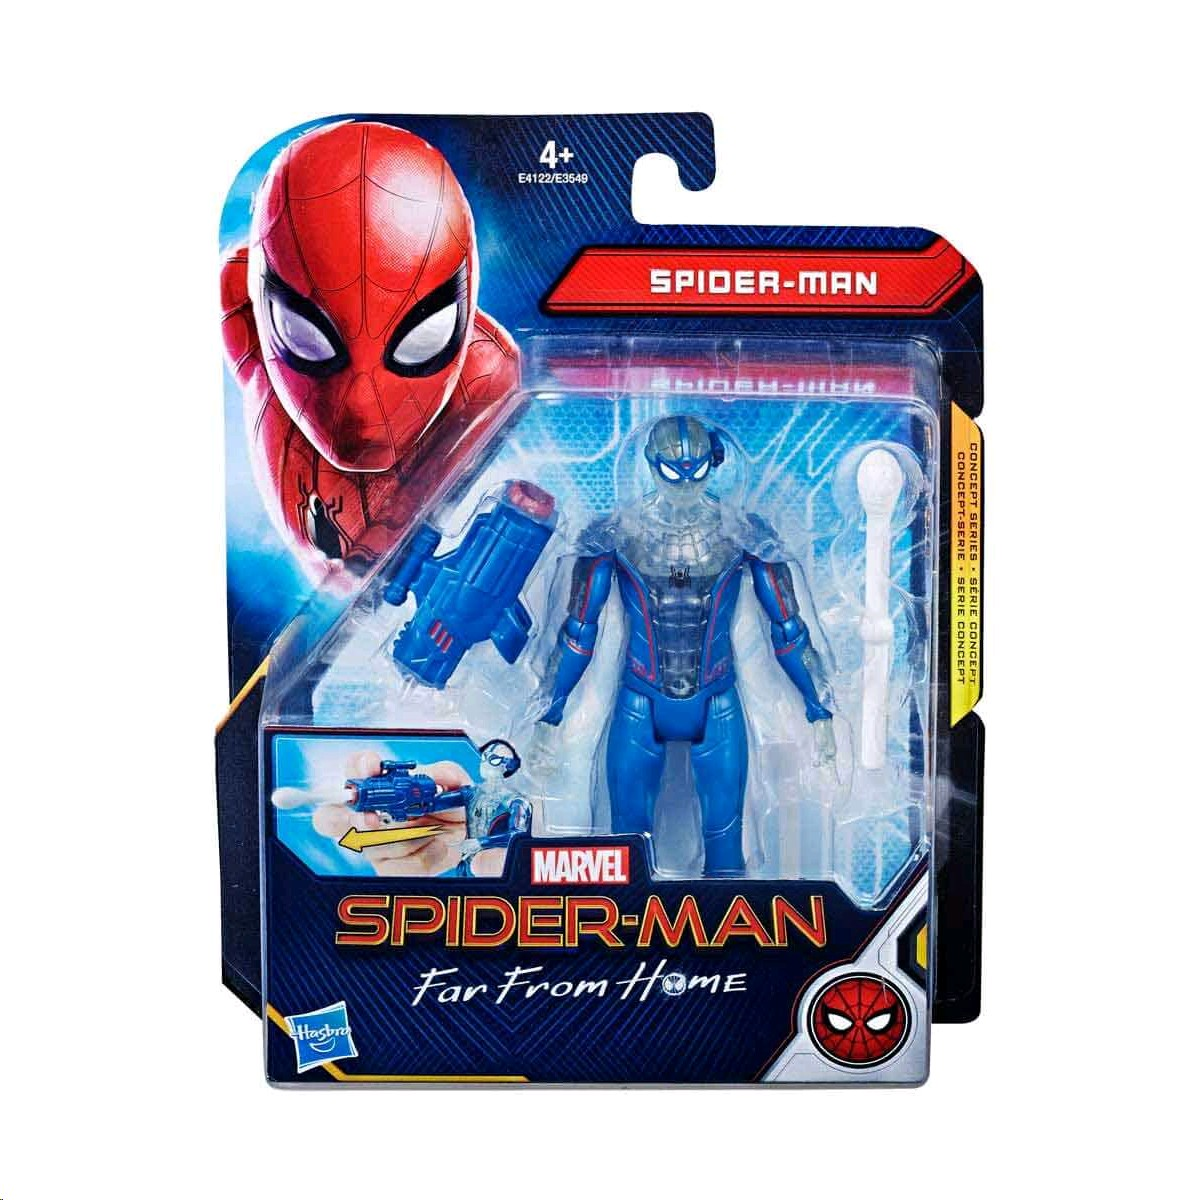 spiderman-far-from-home-figur-spiderman-launches